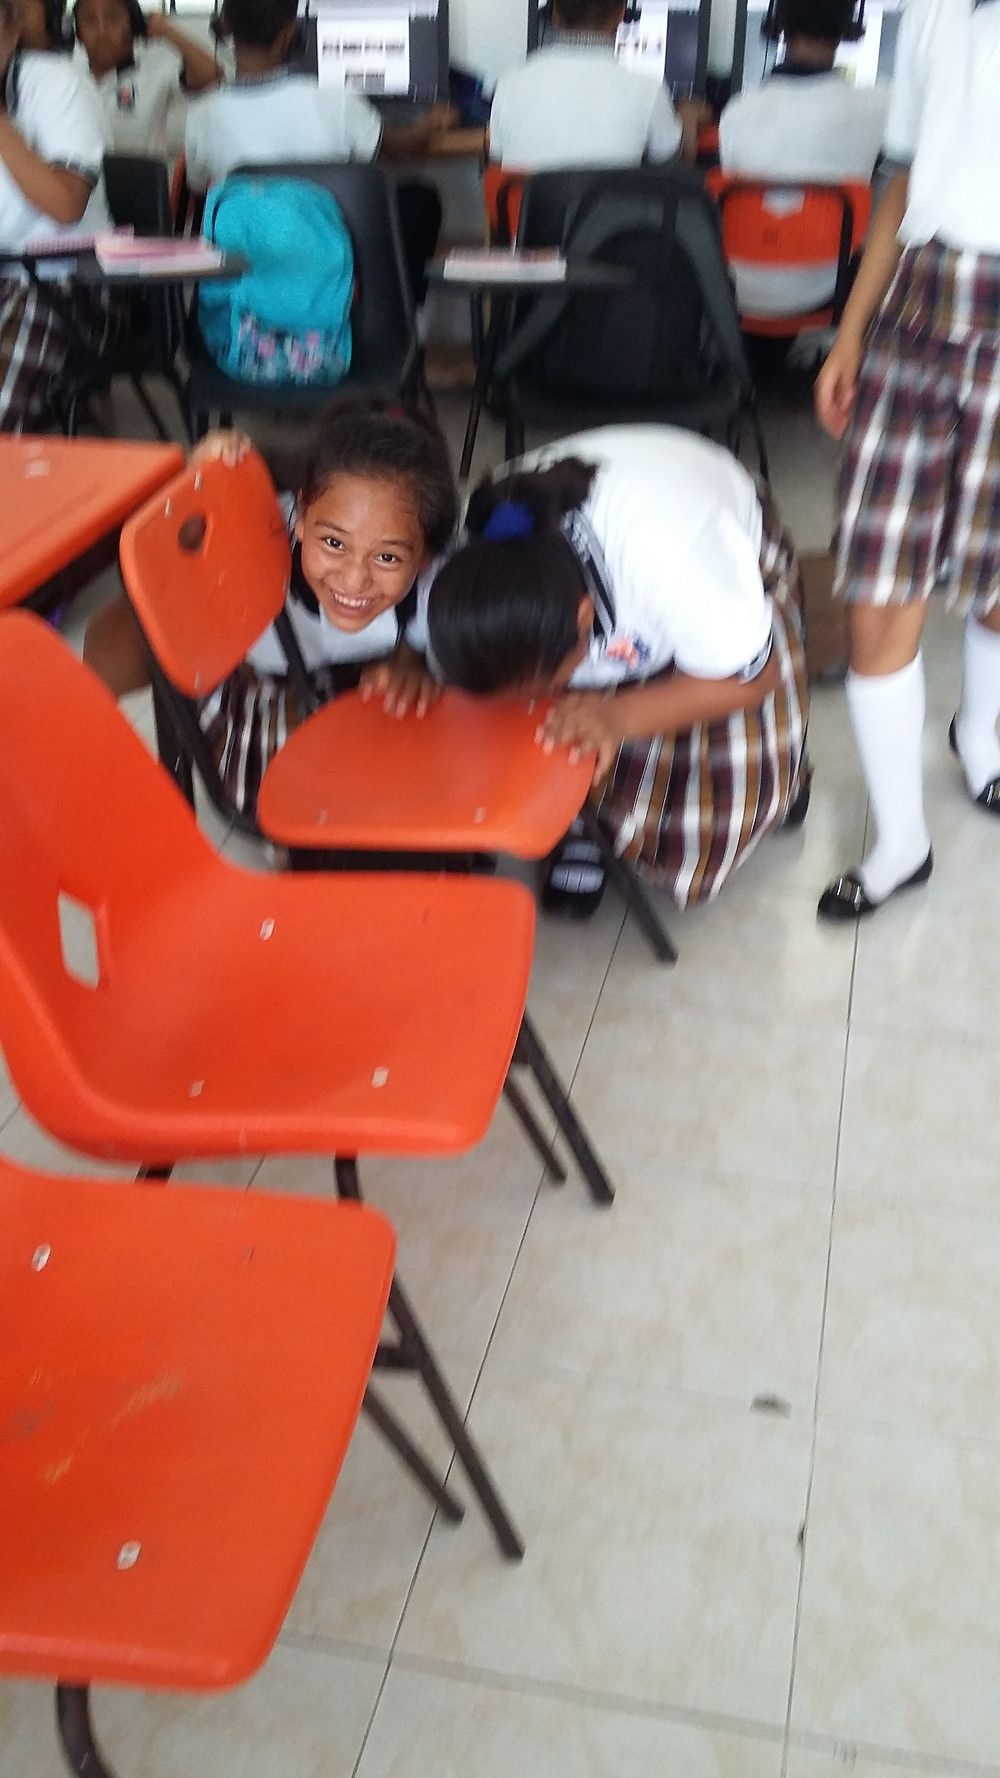 Michelle and Ximena ,grade 7 students love to participate.They are putting their nose on the chair.